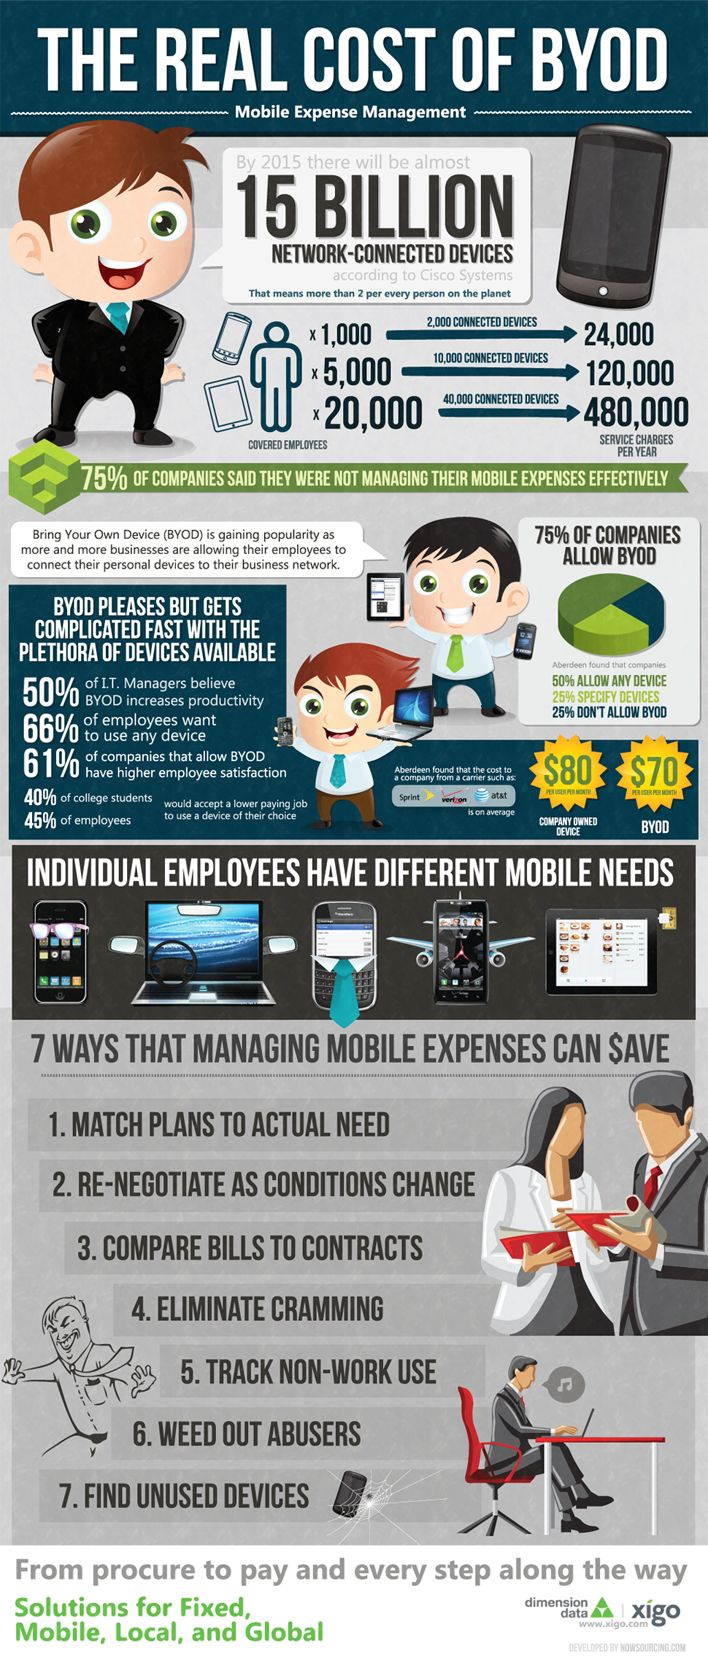 The real cost of #BYOD #Cloud